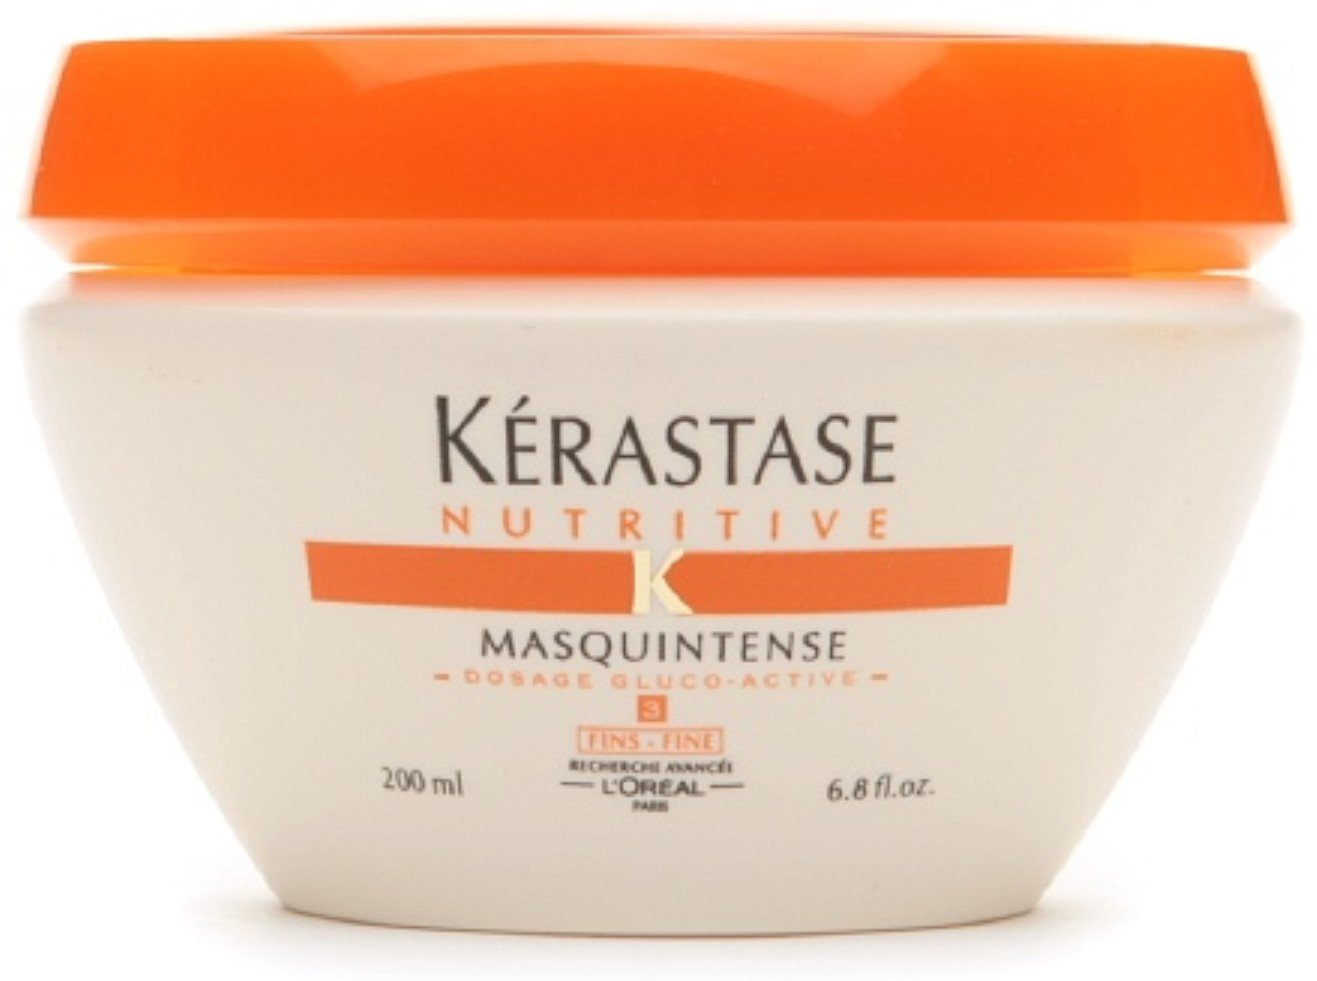 Kerastase Nutritive Masquintense Intense Highly Concentrated Nourishing Treatment, Thick 6.8 oz (Pack of 3)